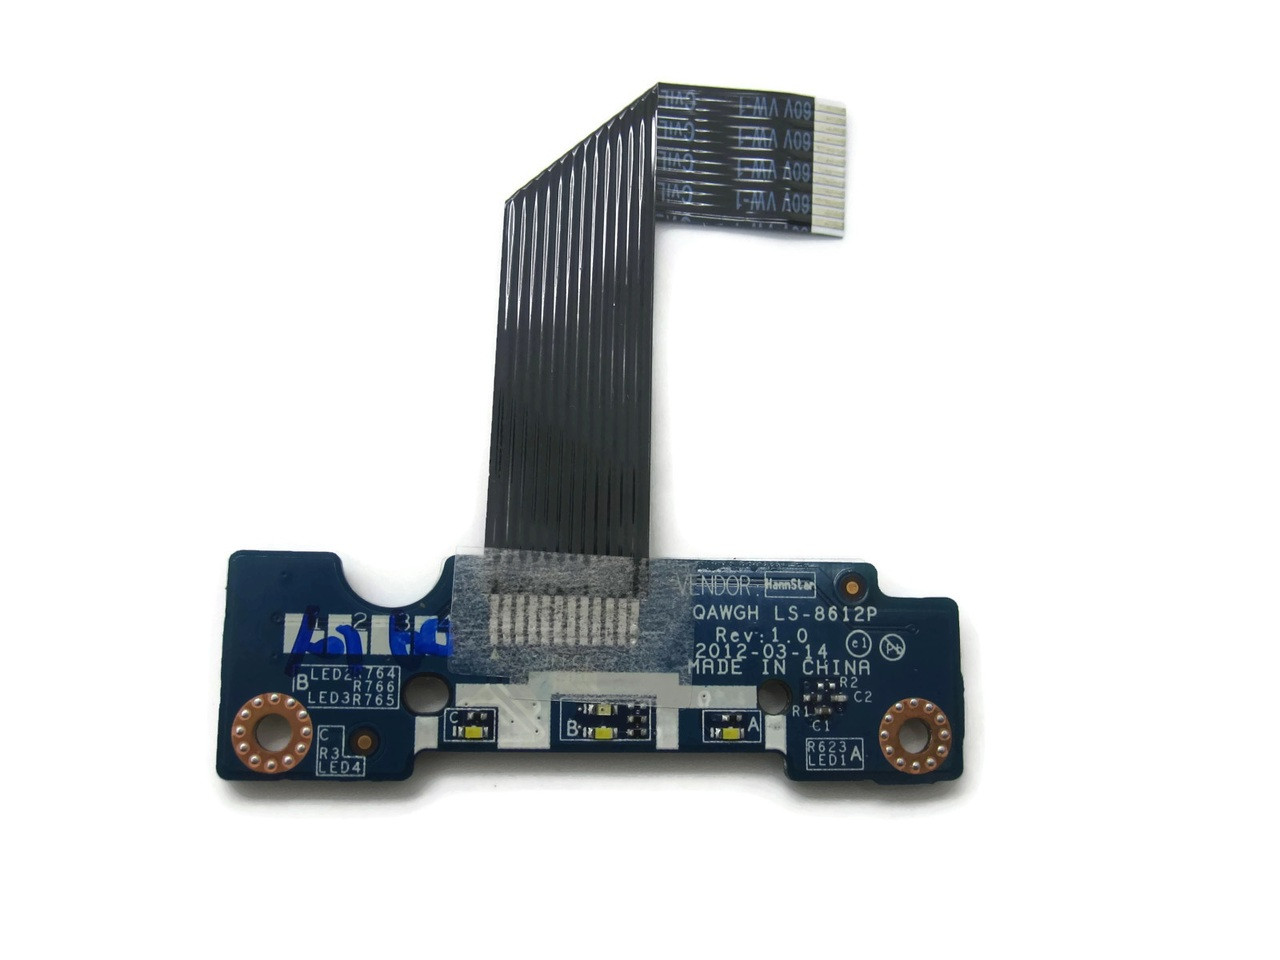 Lenovo N585 N580 Touchpad Mouse Button Board w// Cable LS-8612P NBX00015400